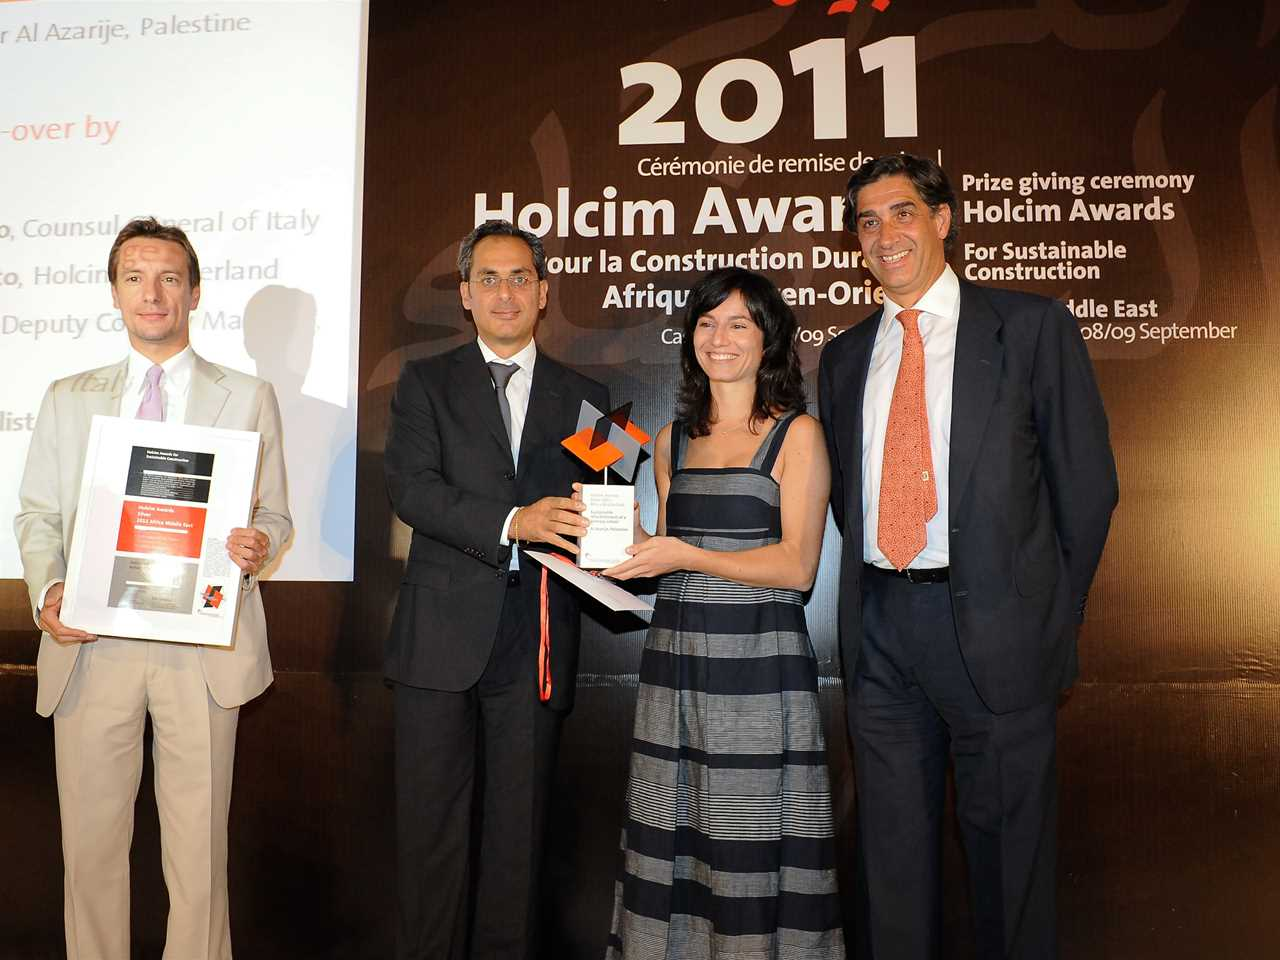 Holcim Awards Silver 2011 Africa Middle East presentation in Casablanca, Morocco (l-r): Luca …